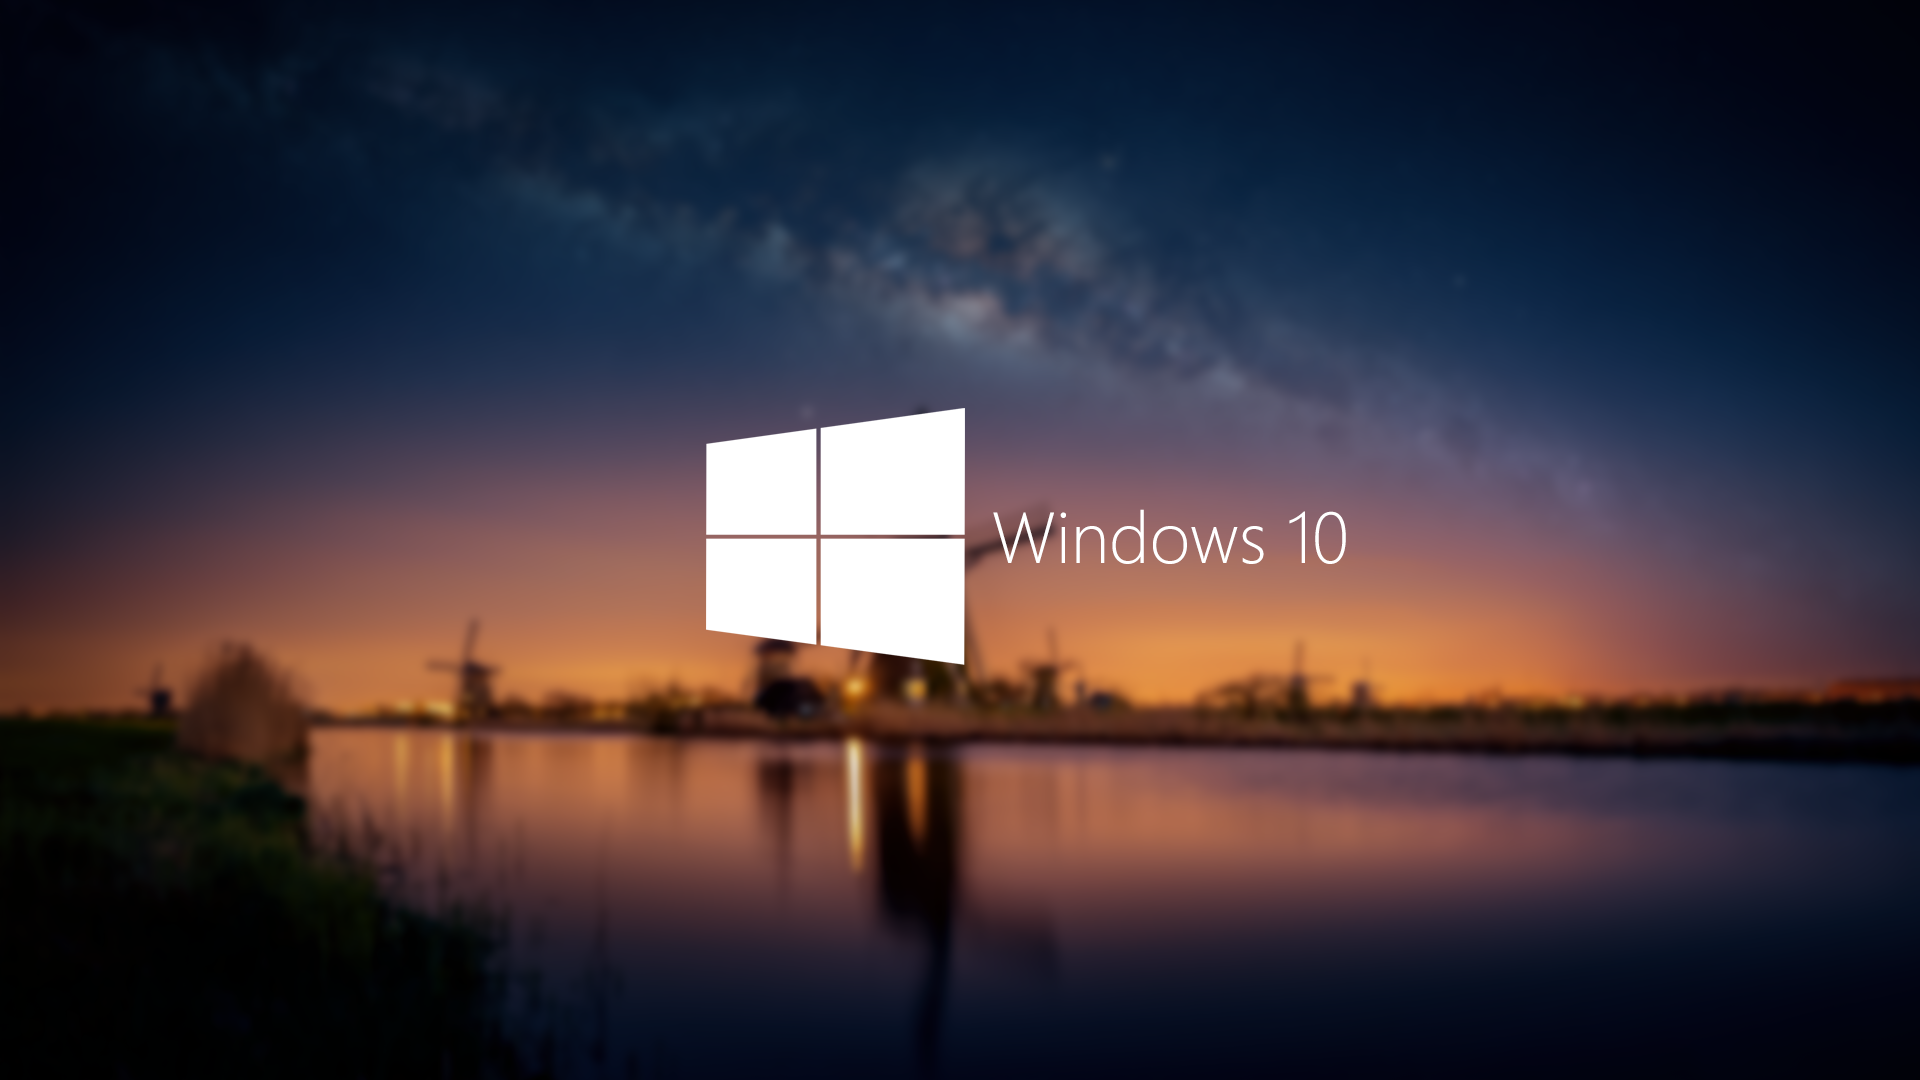 Windows 10 Wallpaper 1920 1080 08 Widewallpaper Info Free Hd Desktop Wallpapers For Widescreen High Definition Mo Wallpaper Windows 10 Windows 10 Windows